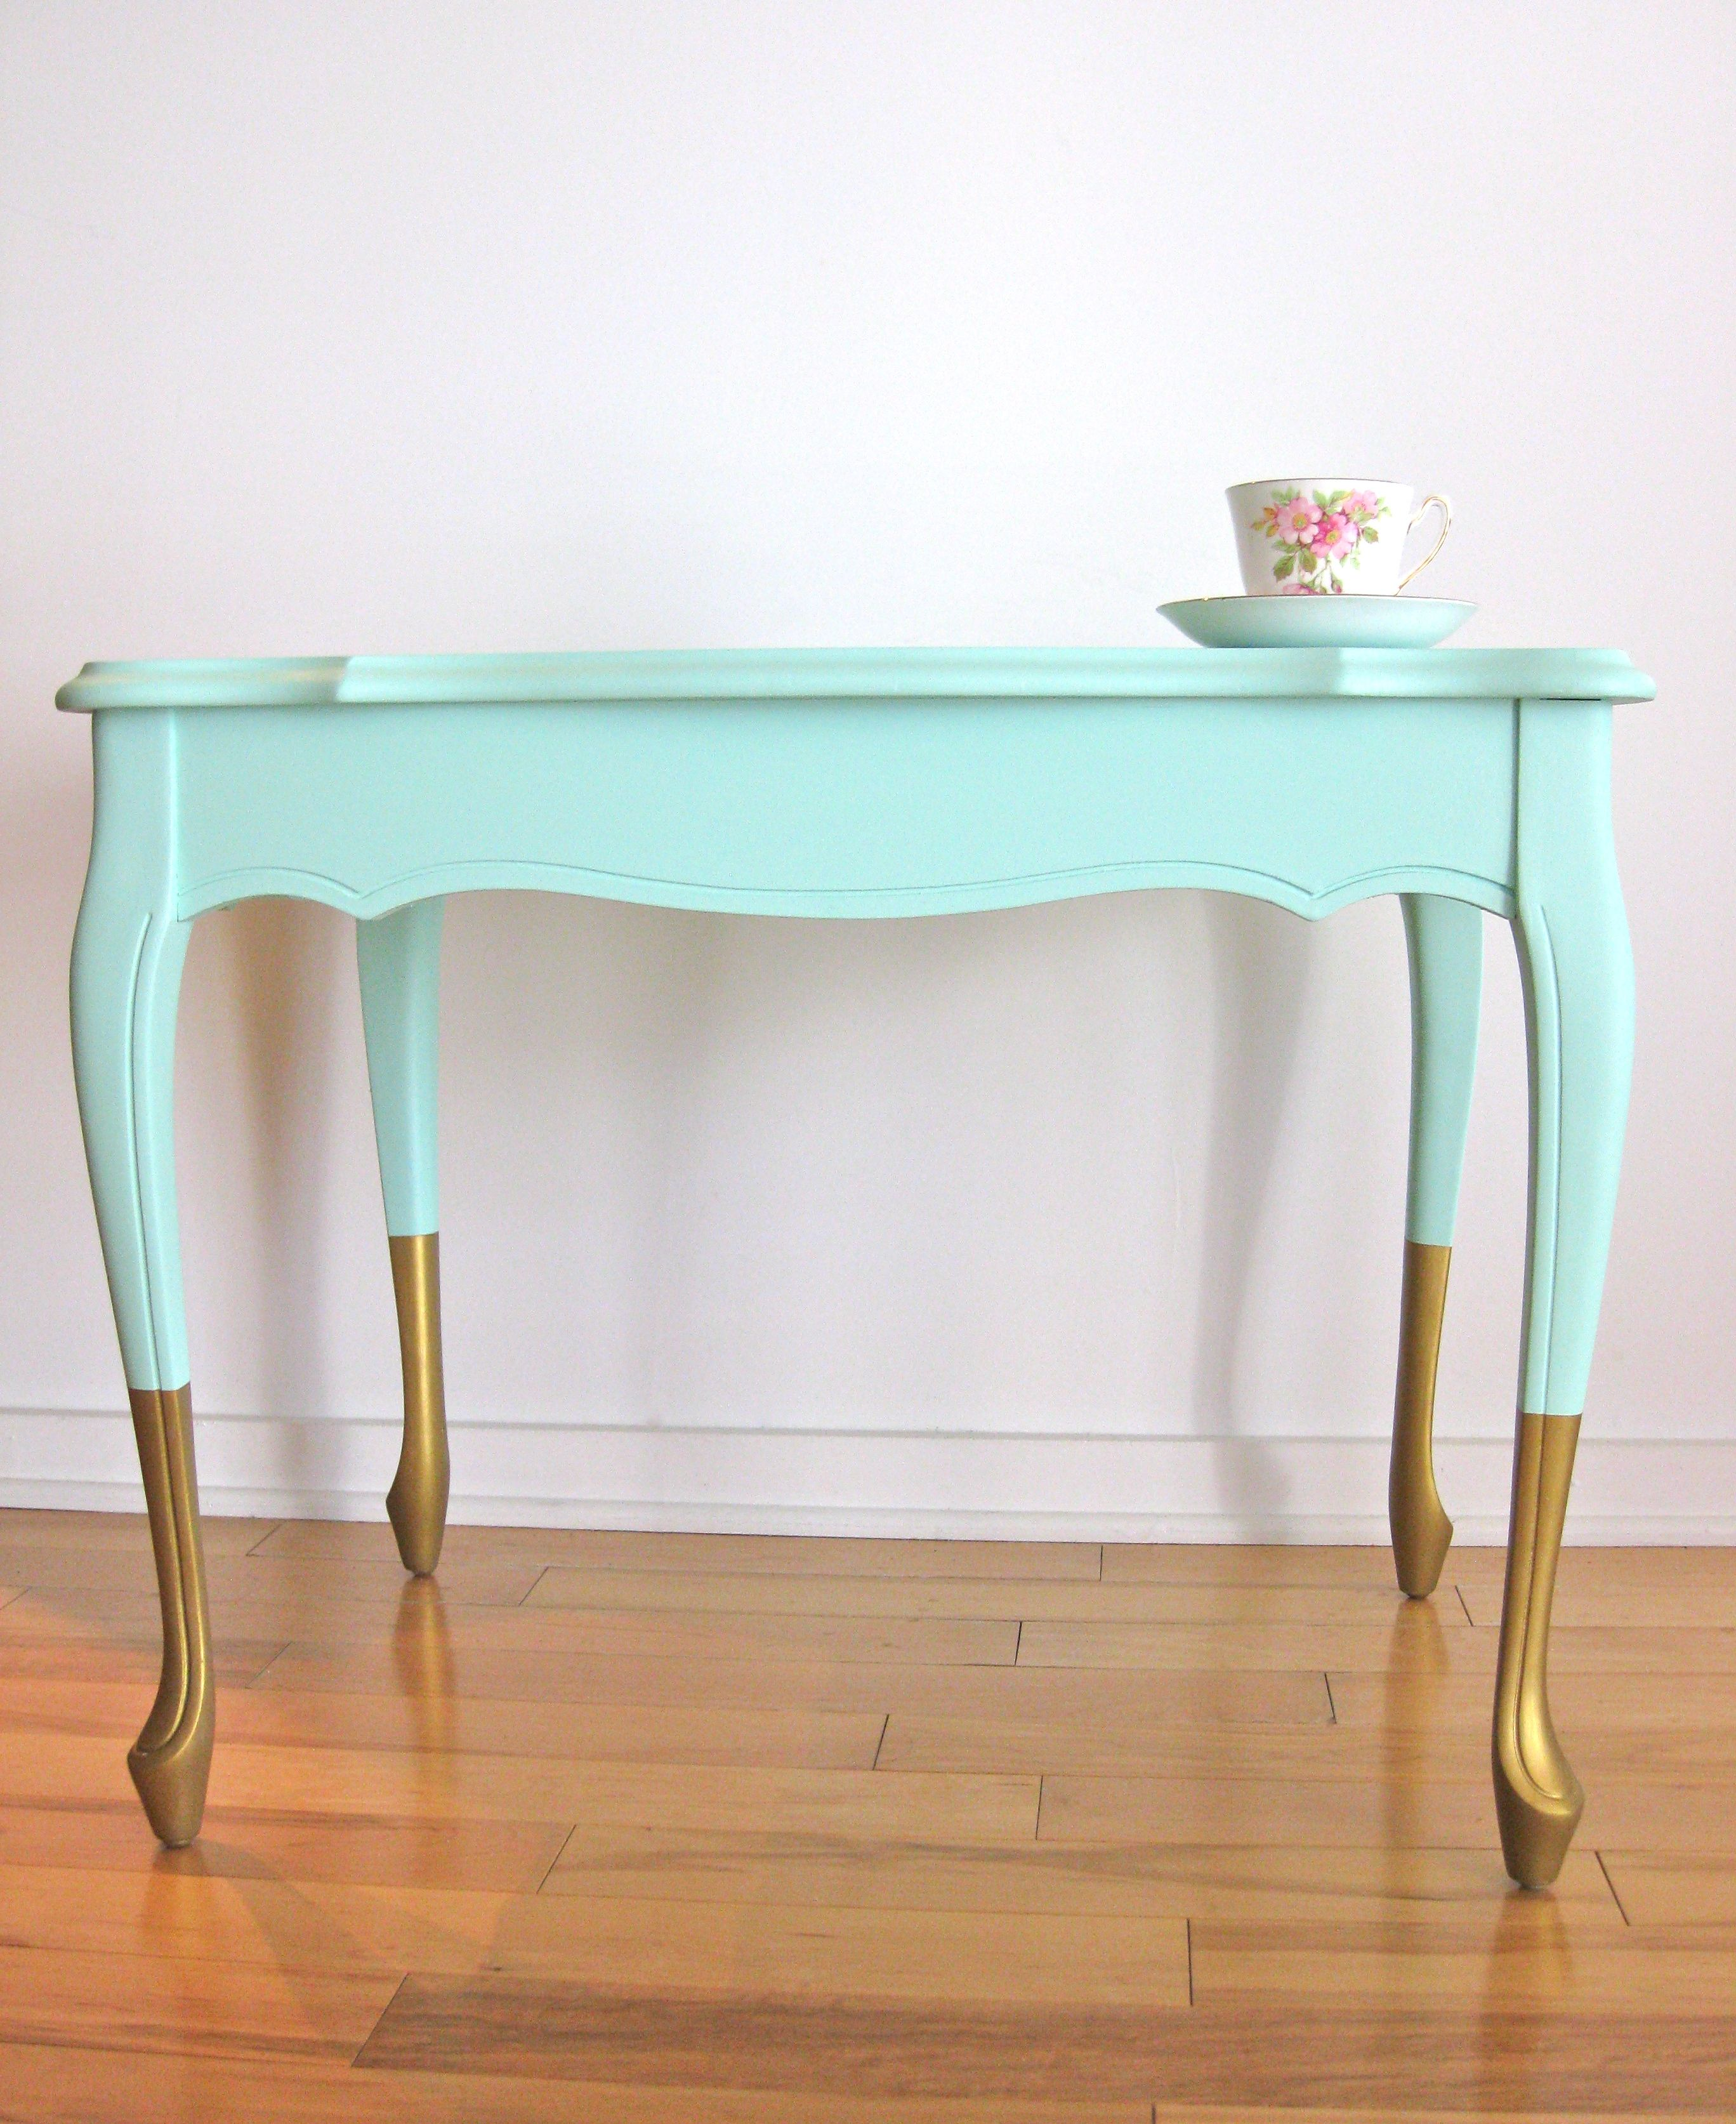 Table Basse Menthe Et Or / Mint And Gold Coffee Table